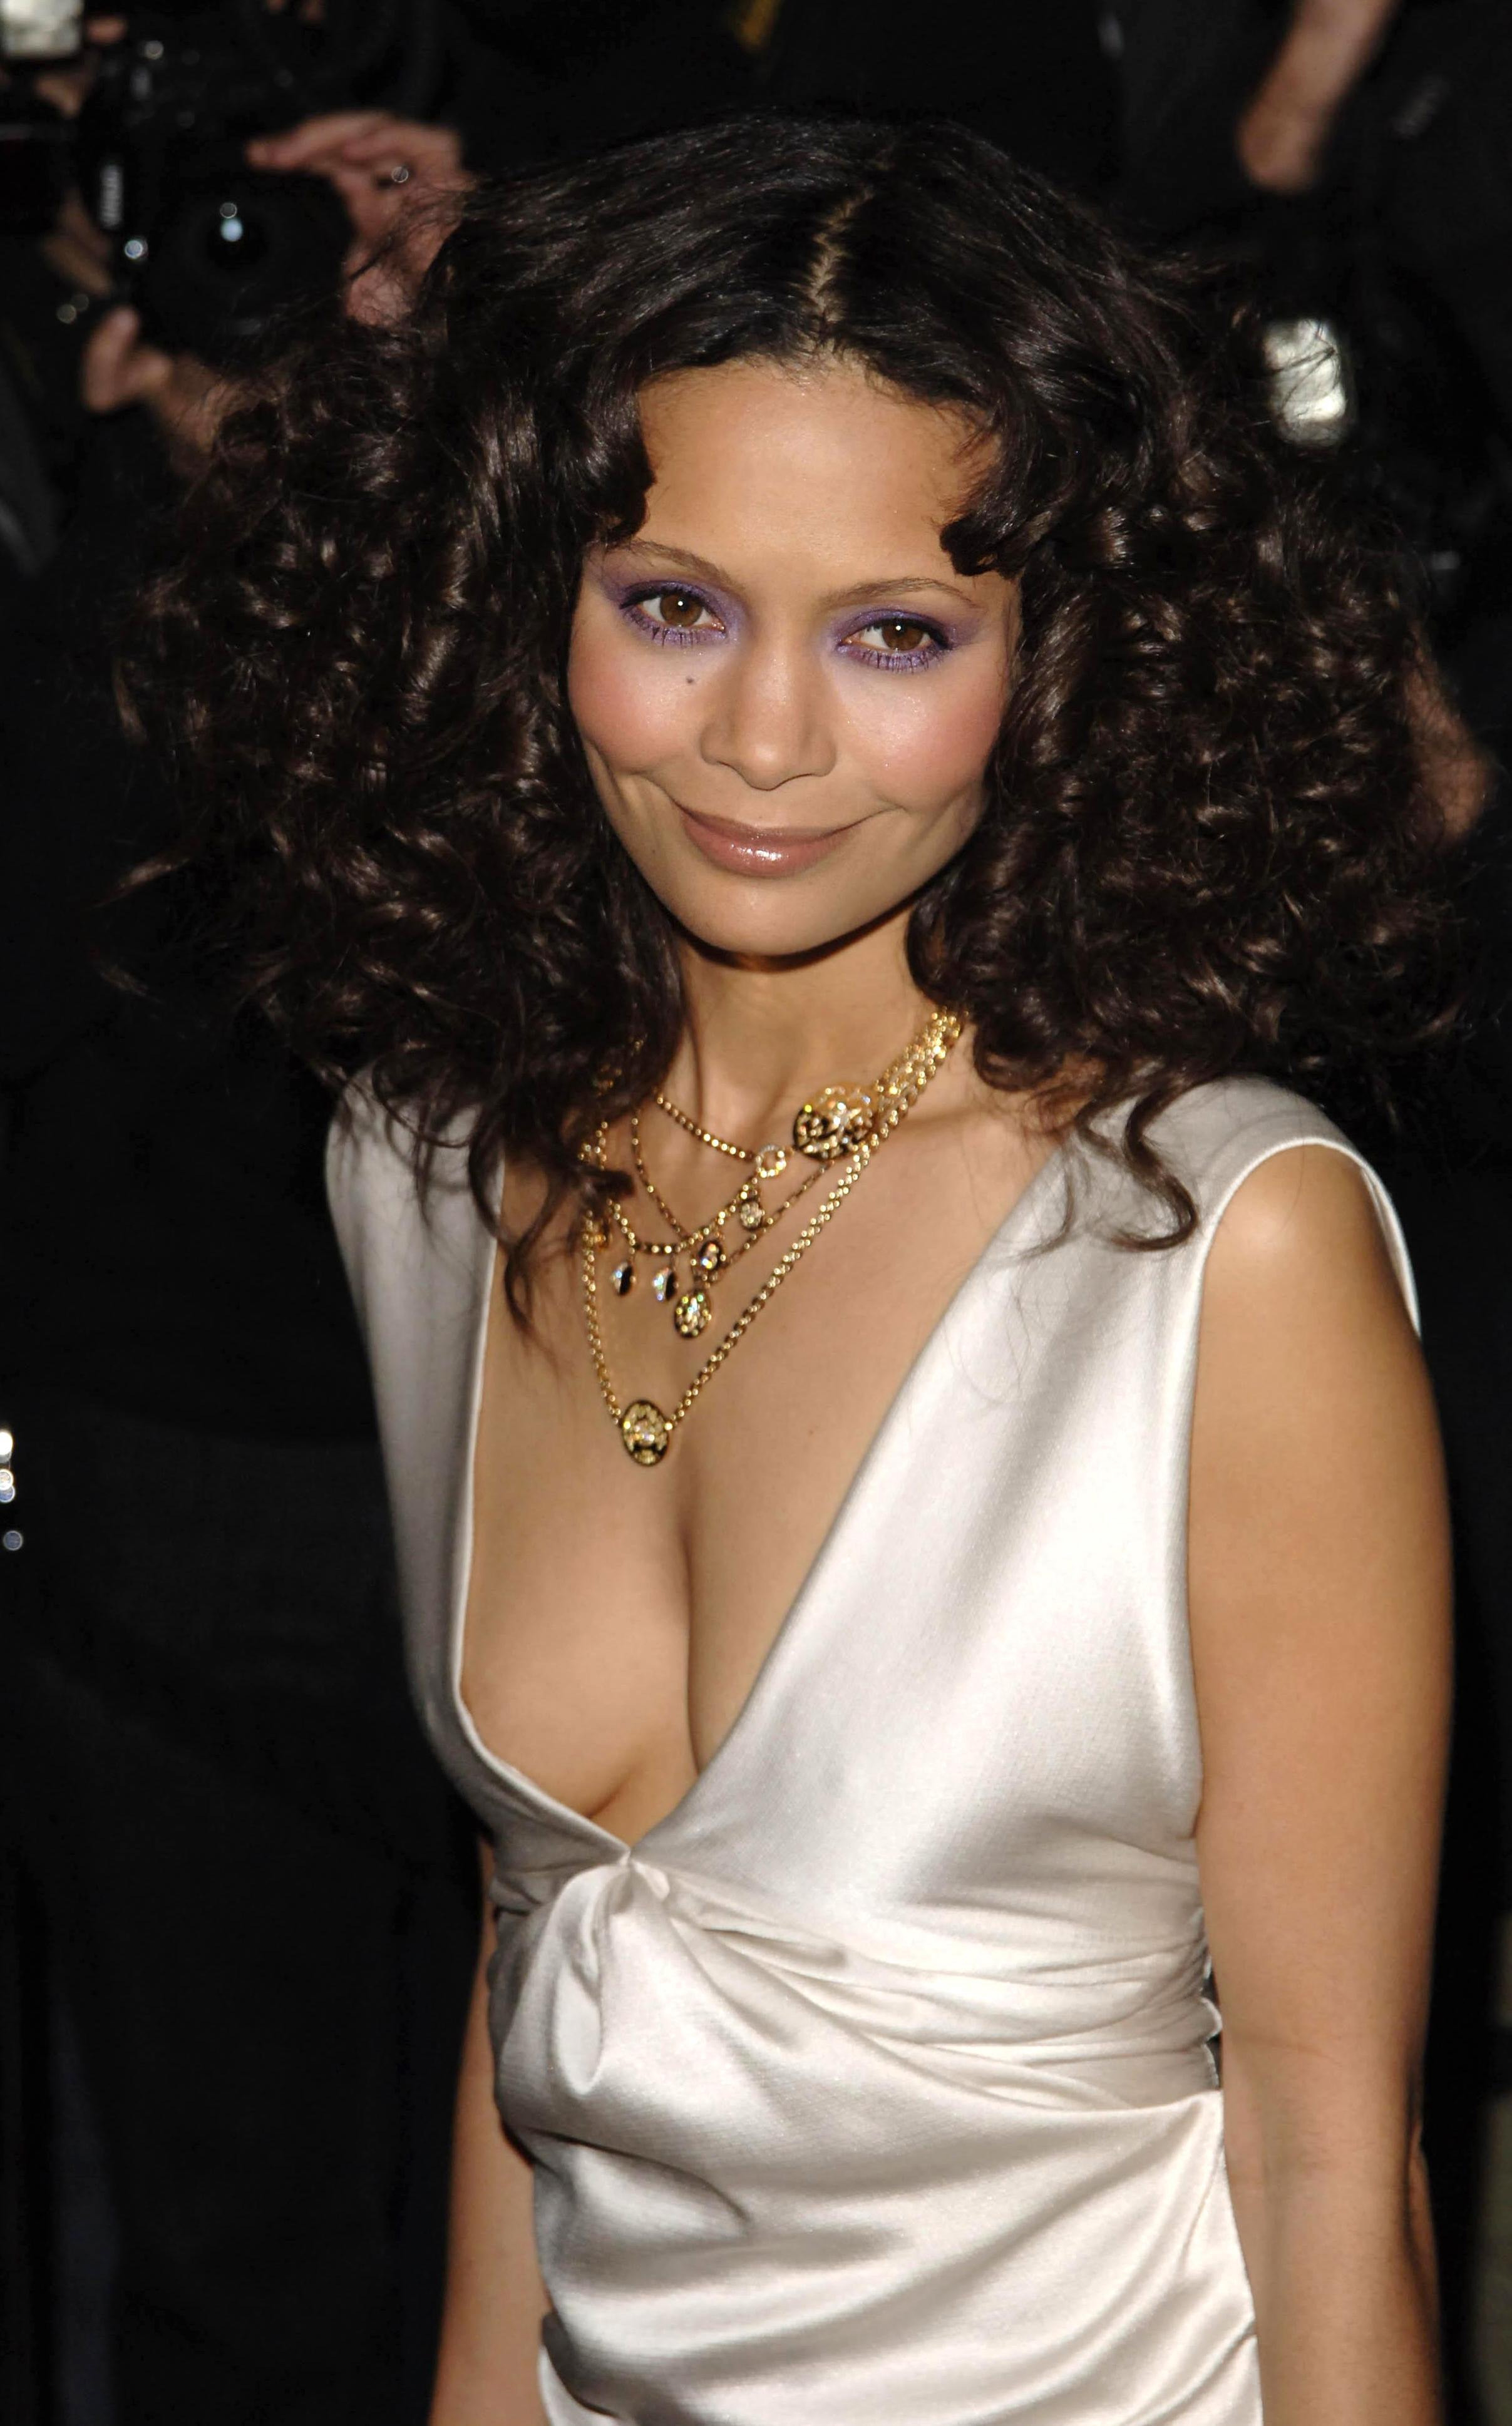 Thandie Newton Reveals Her Battle With Bulimia News